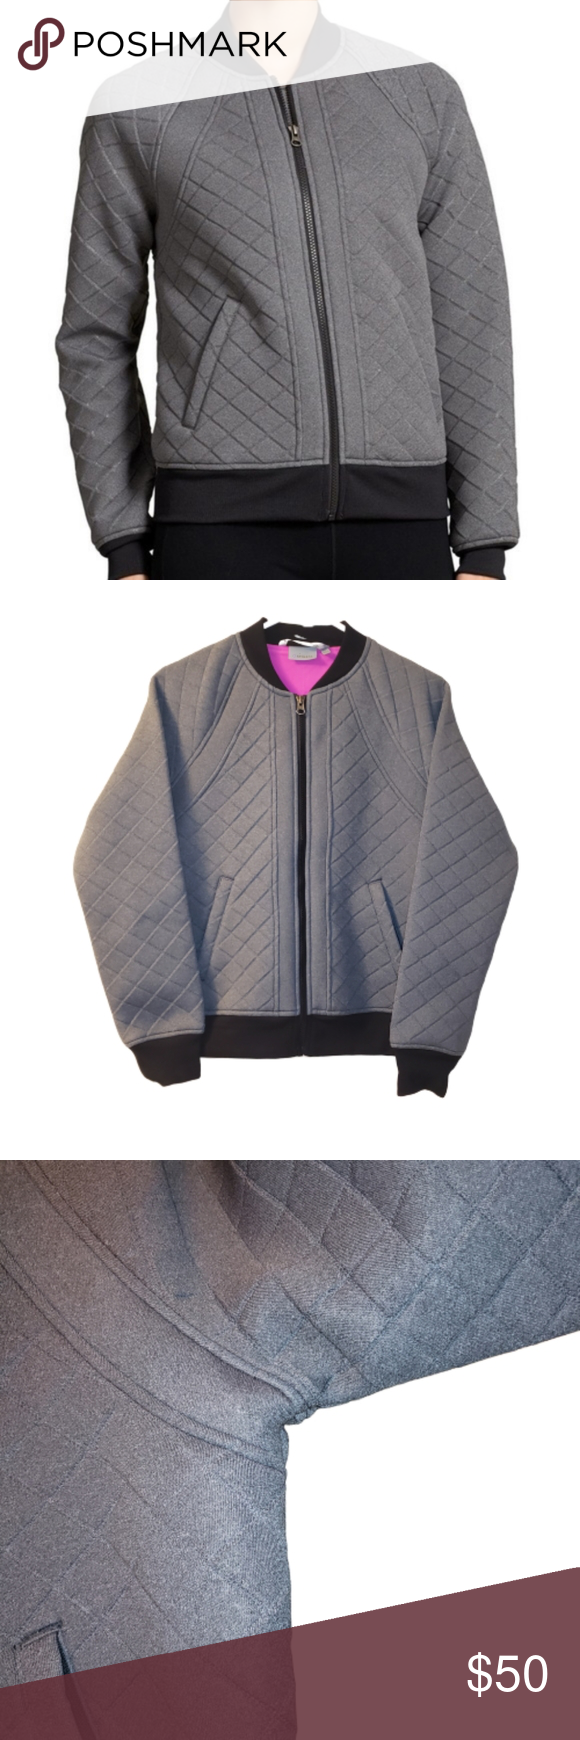 Athleta Gray Quilted Infusion Bomber Jacket In 2020 Clothes Design Bomber Jacket Jackets [ 1740 x 580 Pixel ]